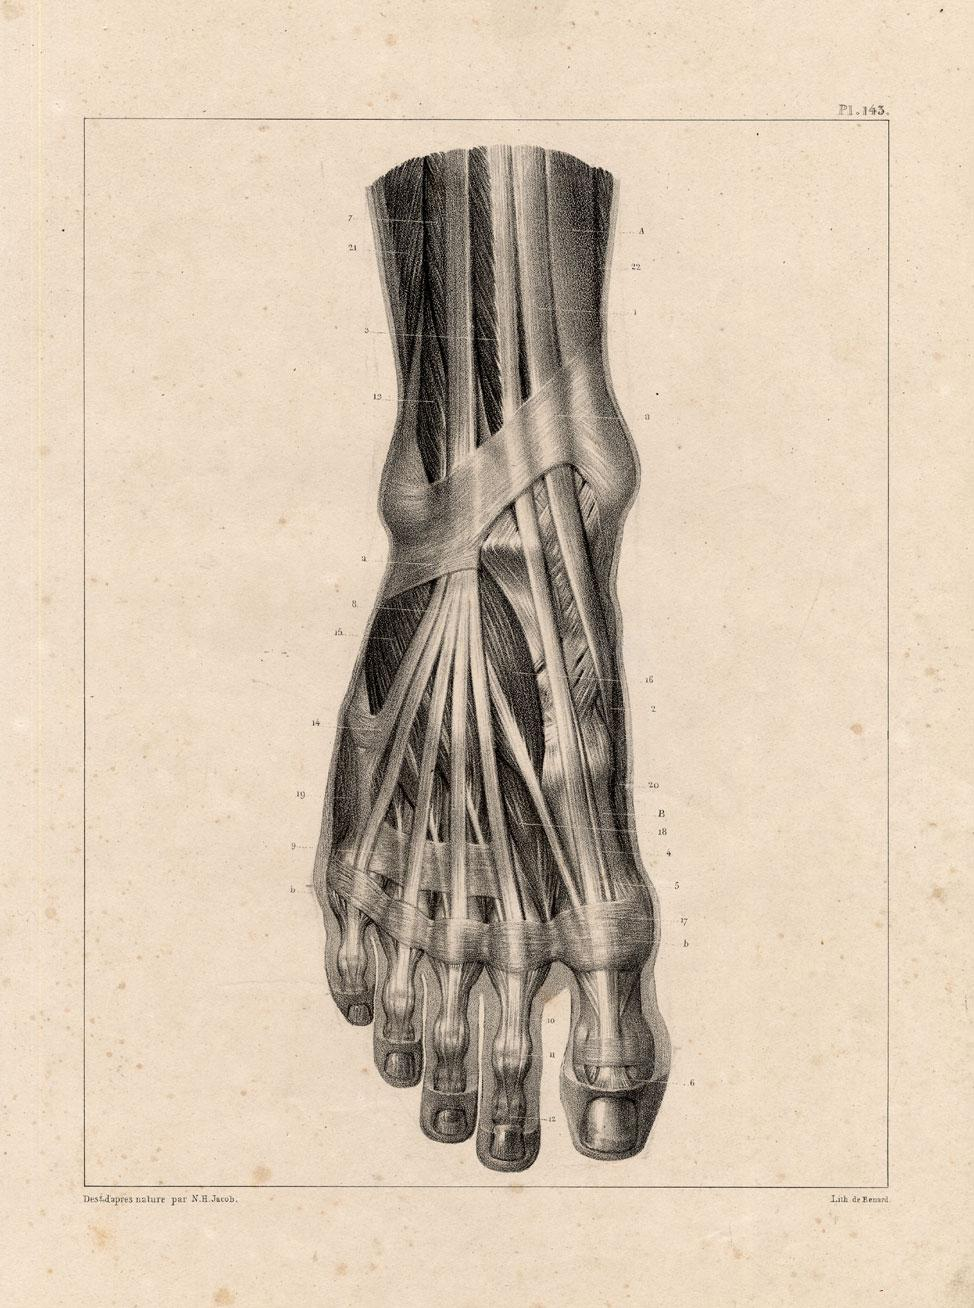 4 Antique Medical Anatomy Prints Muscles Leg Foot Toe Bourgery 1831